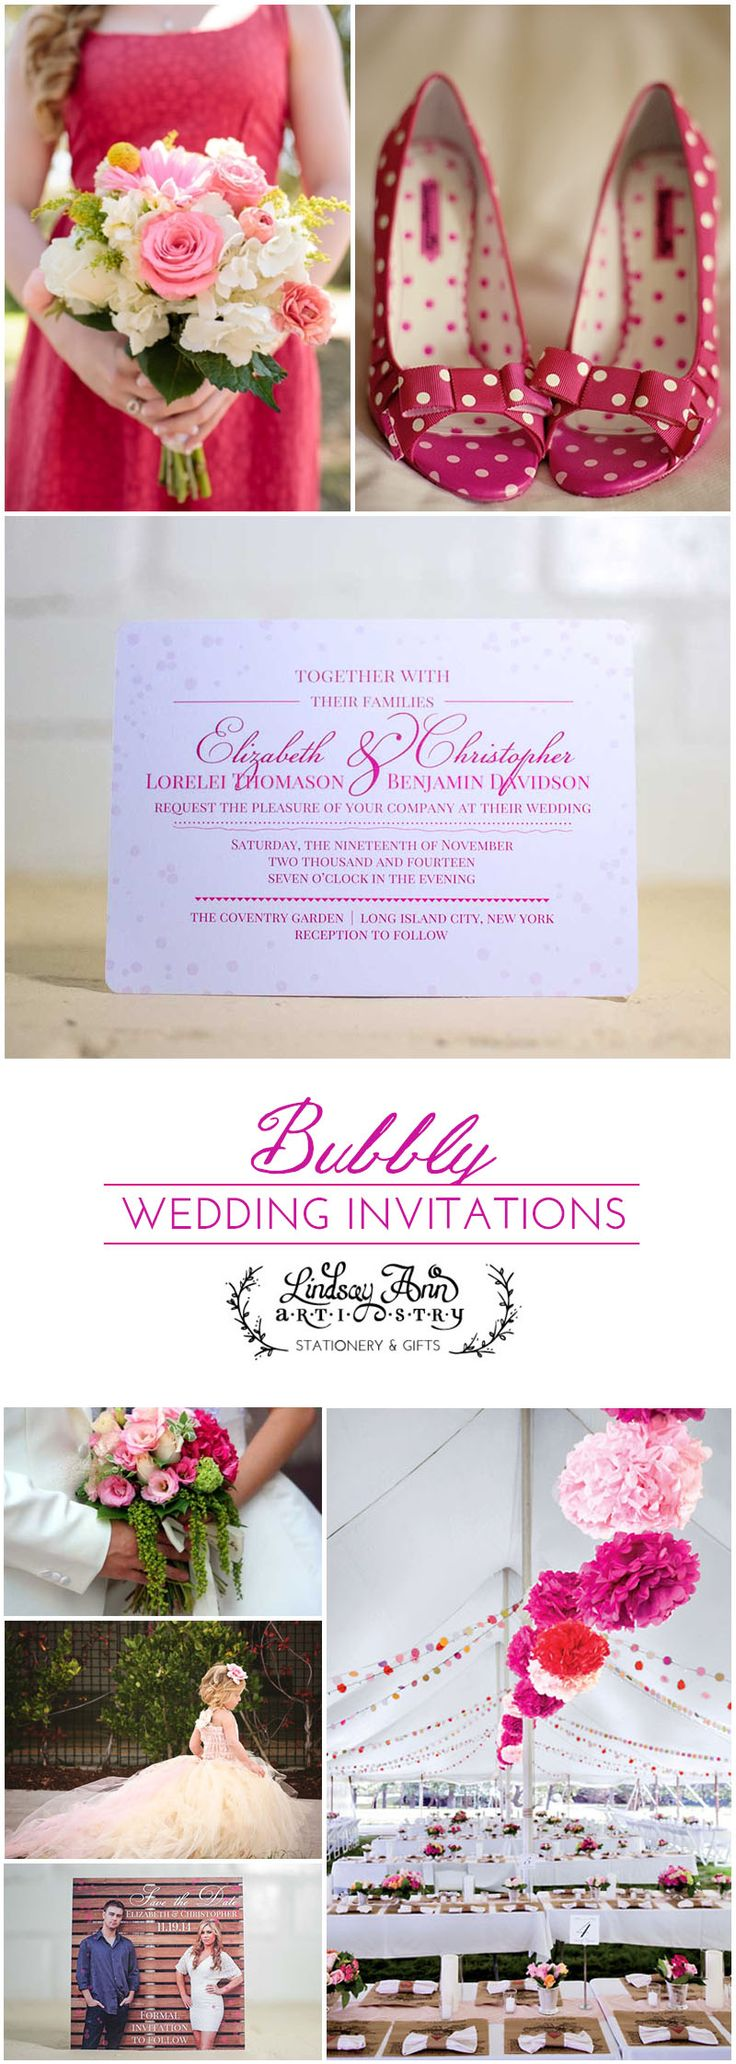 casual evening wedding invitation wording%0A Bubbly Wedding Invitation Suite  pinkwedding  champagne  airy  fresh   wedding  stationery